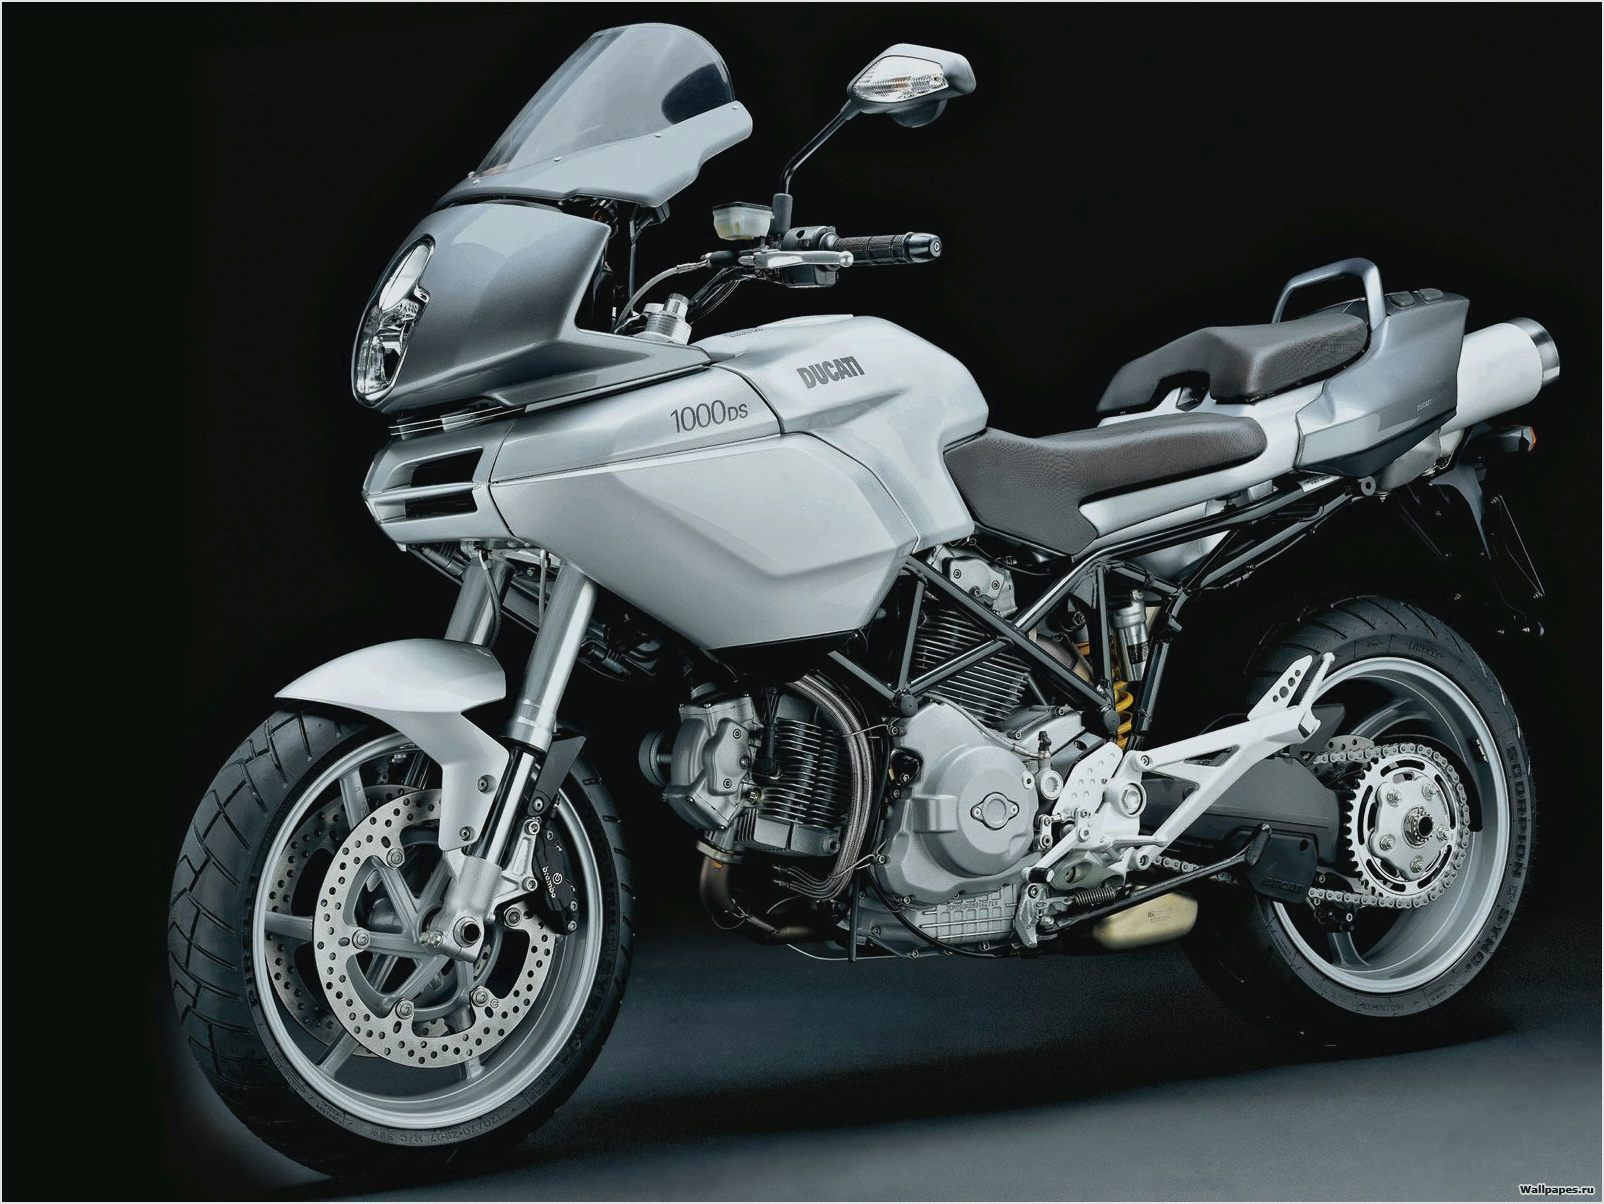 Ducati Multistrada 1000 DS 2006 images #79204